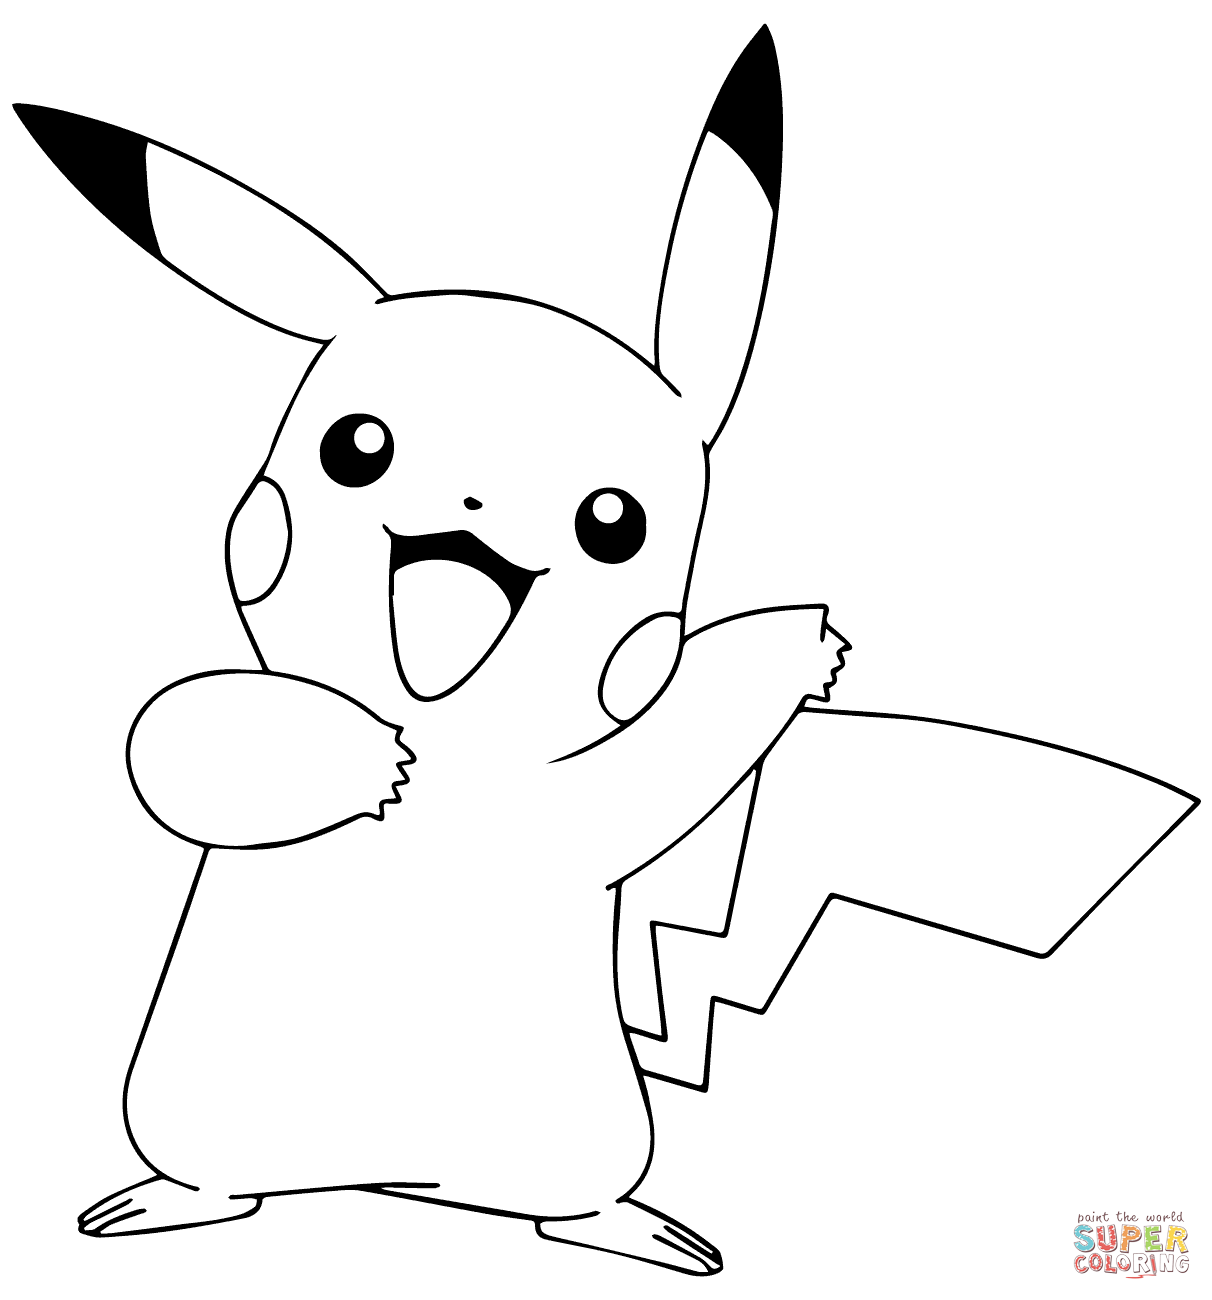 pikachu images for coloring pikachu coloring pages to download and print for free coloring images pikachu for